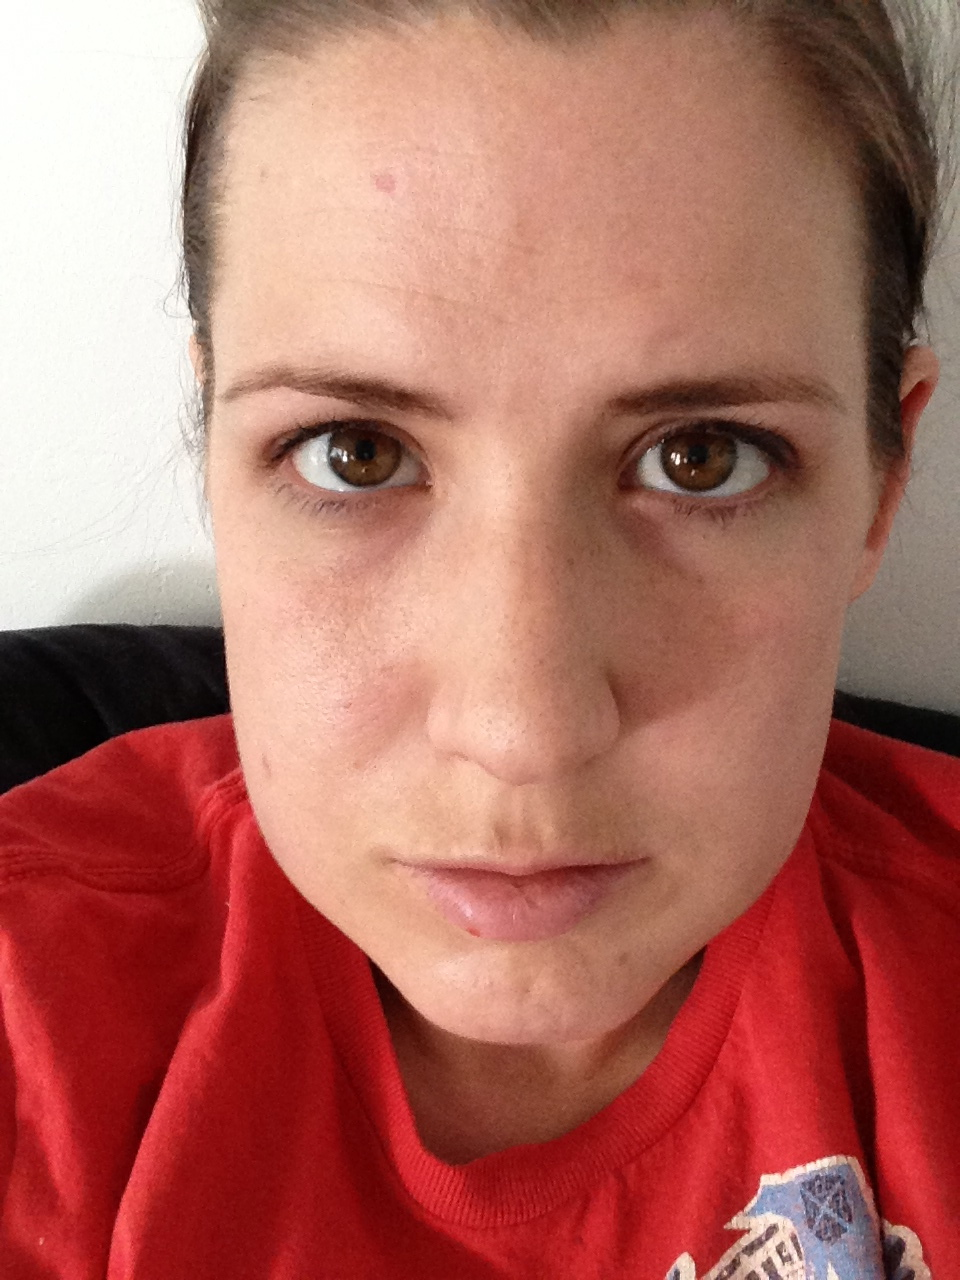 how to help swelling from wisdom teeth removal